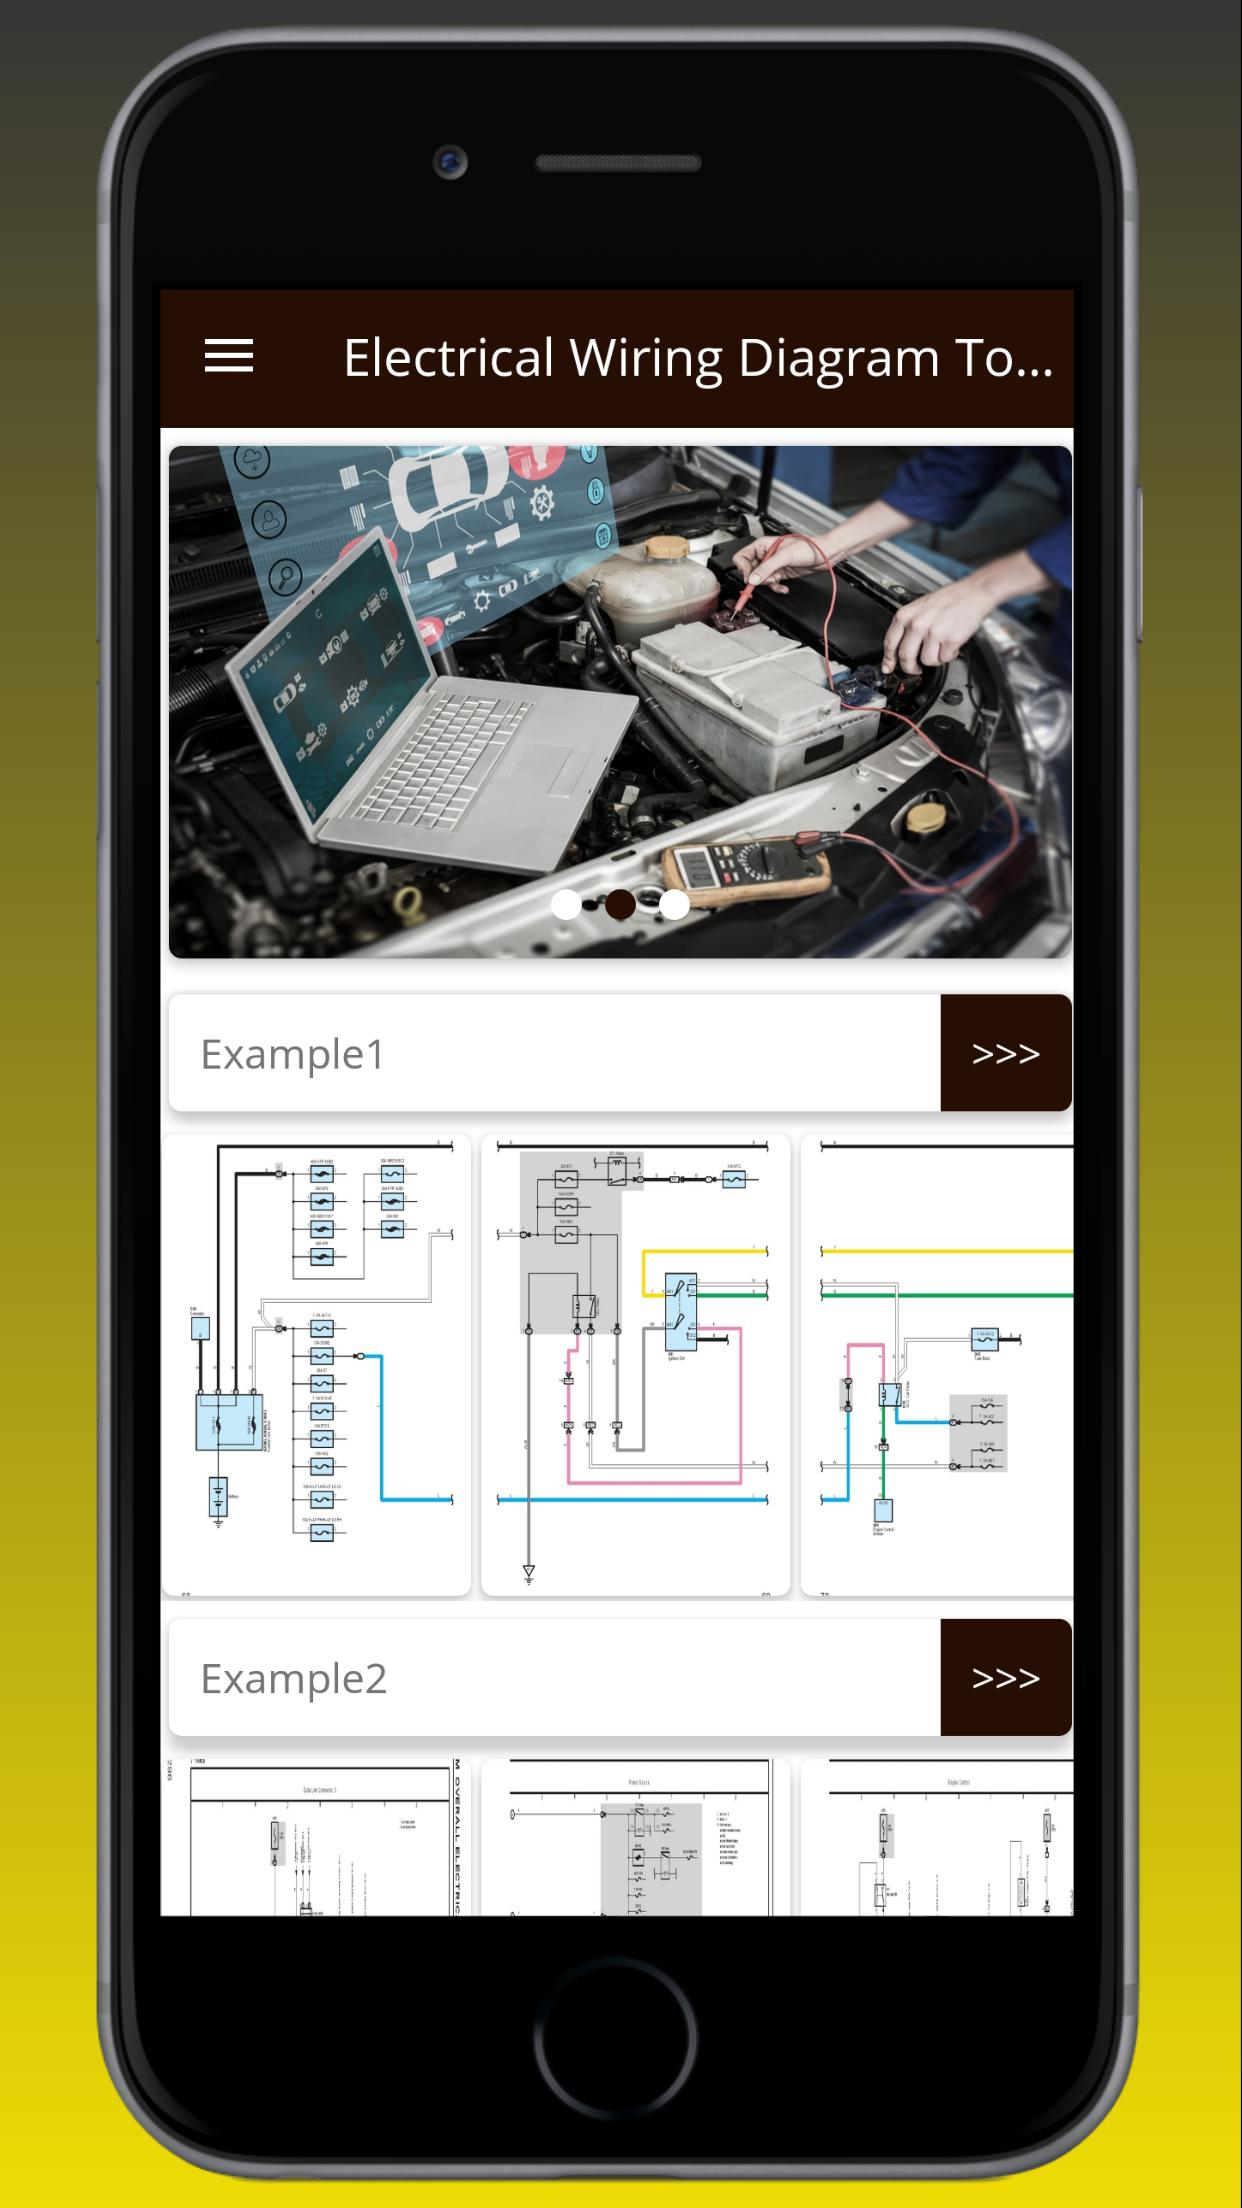 toyota 1 8 diagram electrical wiring diagram toyota yaris for android apk download  electrical wiring diagram toyota yaris